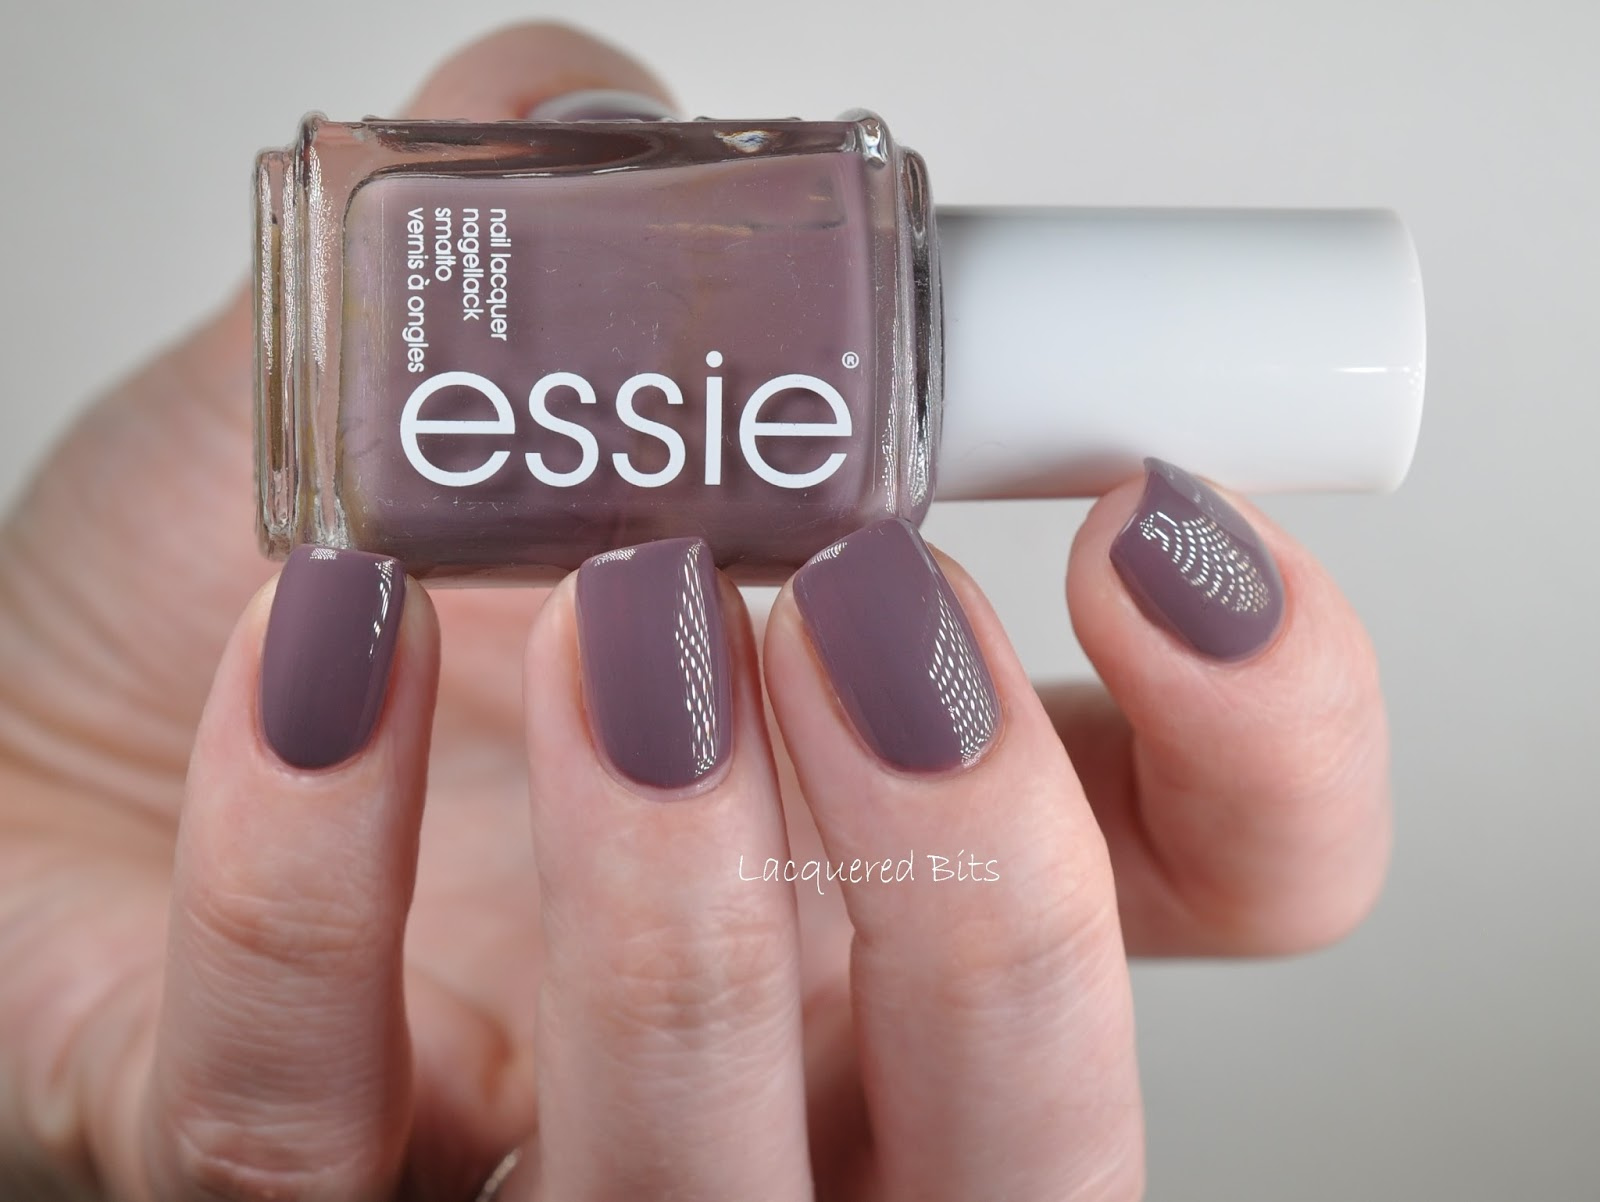 Essie - Merino Cool - Swatches & Review - Lacquered Bits